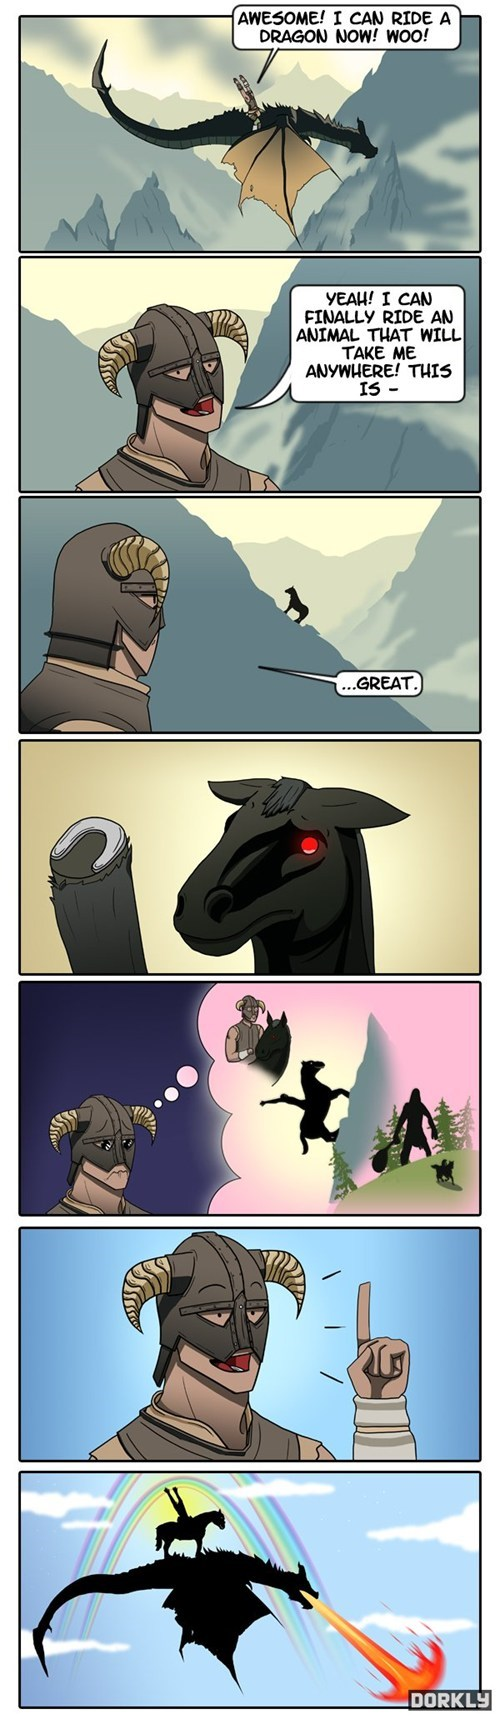 dragonborn,dragons,comic,riding,horses,Skyrim